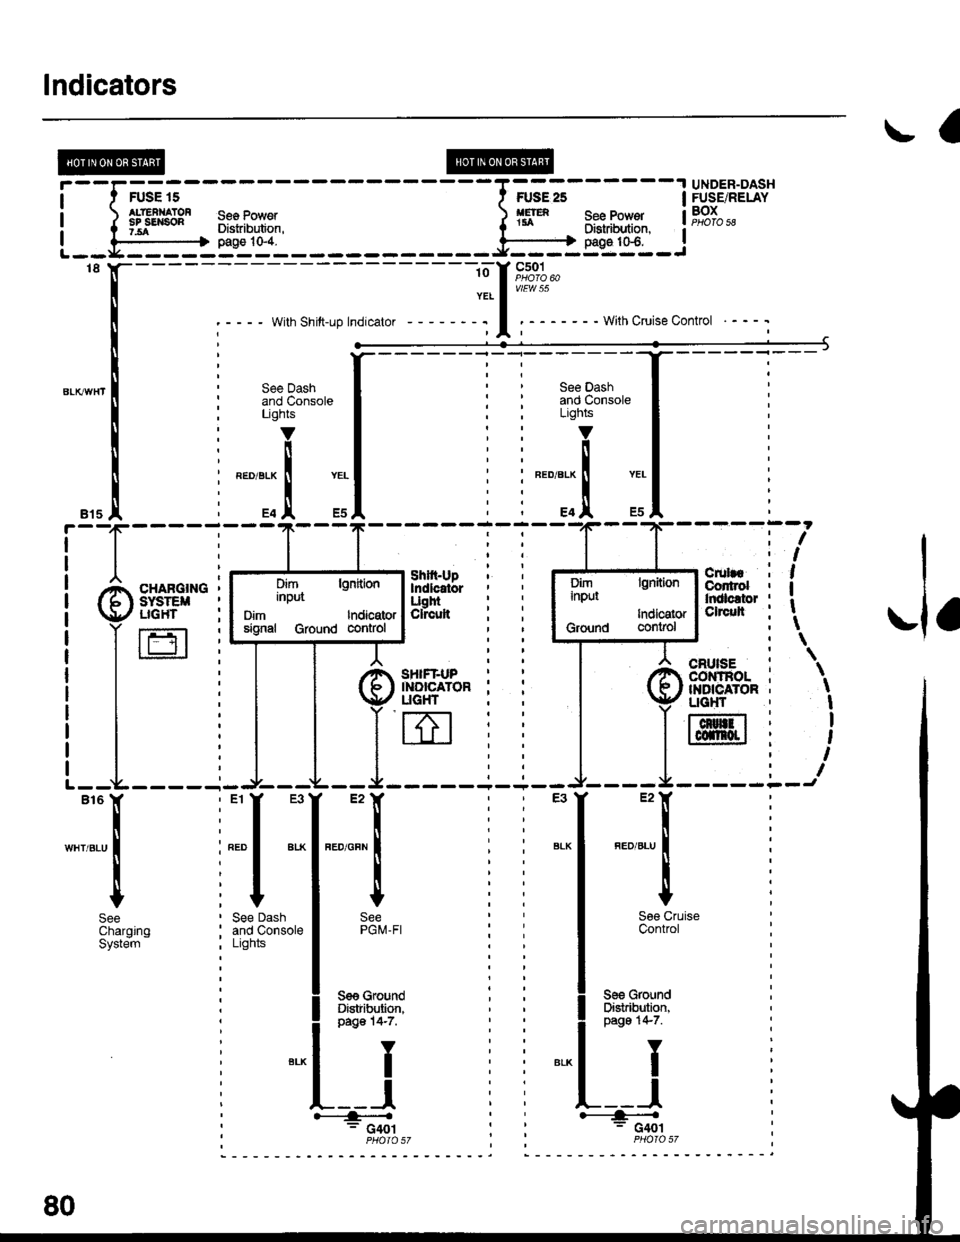 1999 chevy prizm wiring harness imageresizertool com 1999 chevy prizm wiring diagram